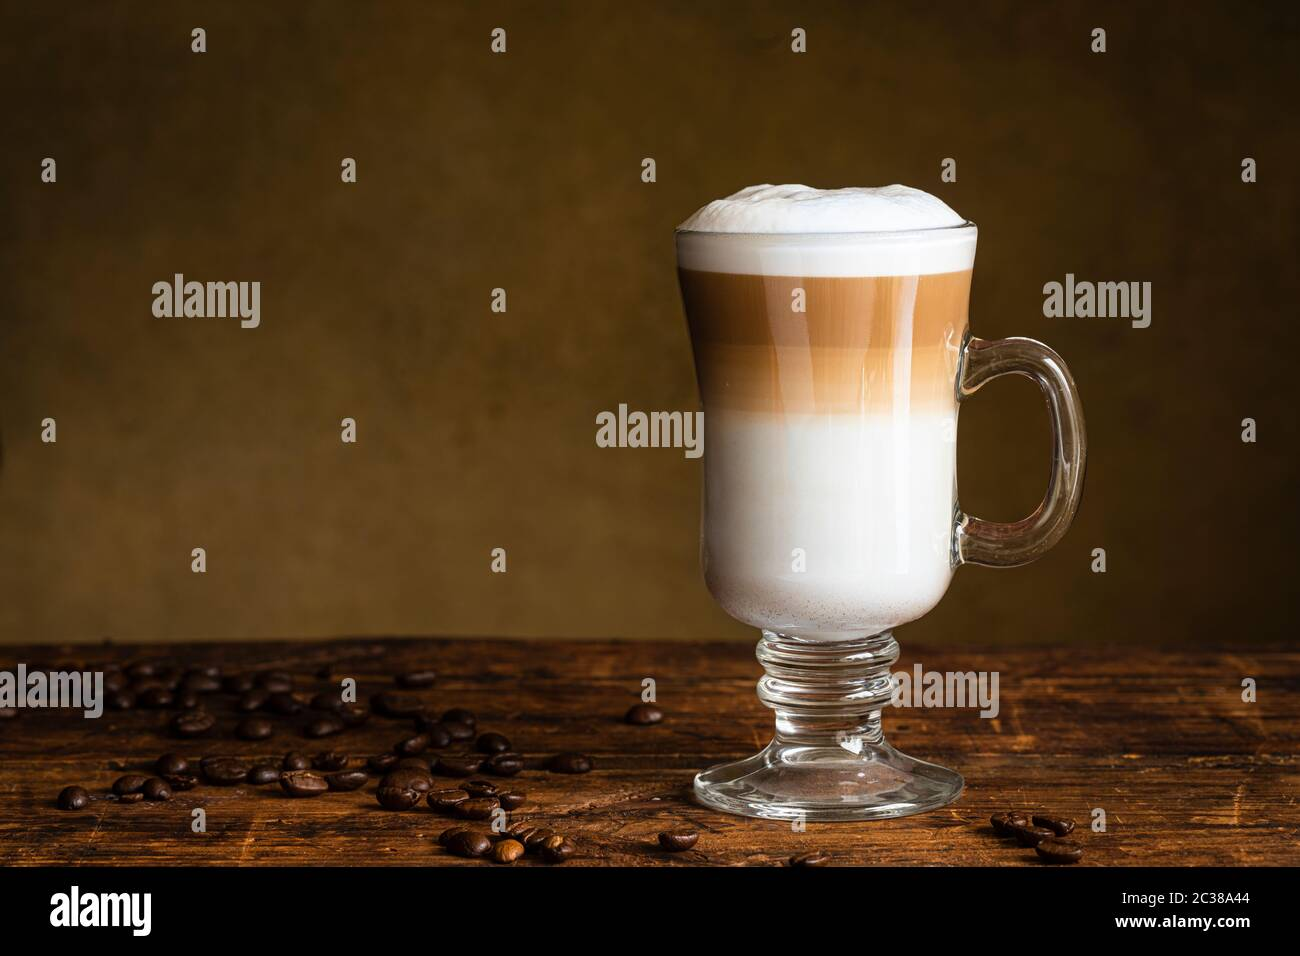 Cafe Latte Macchiato Layered Coffee In A See Through Glass Irish Coffee Glass The Cup Is On A Wooden Table With Coffee Beans On The Table Next To The Stock Photo